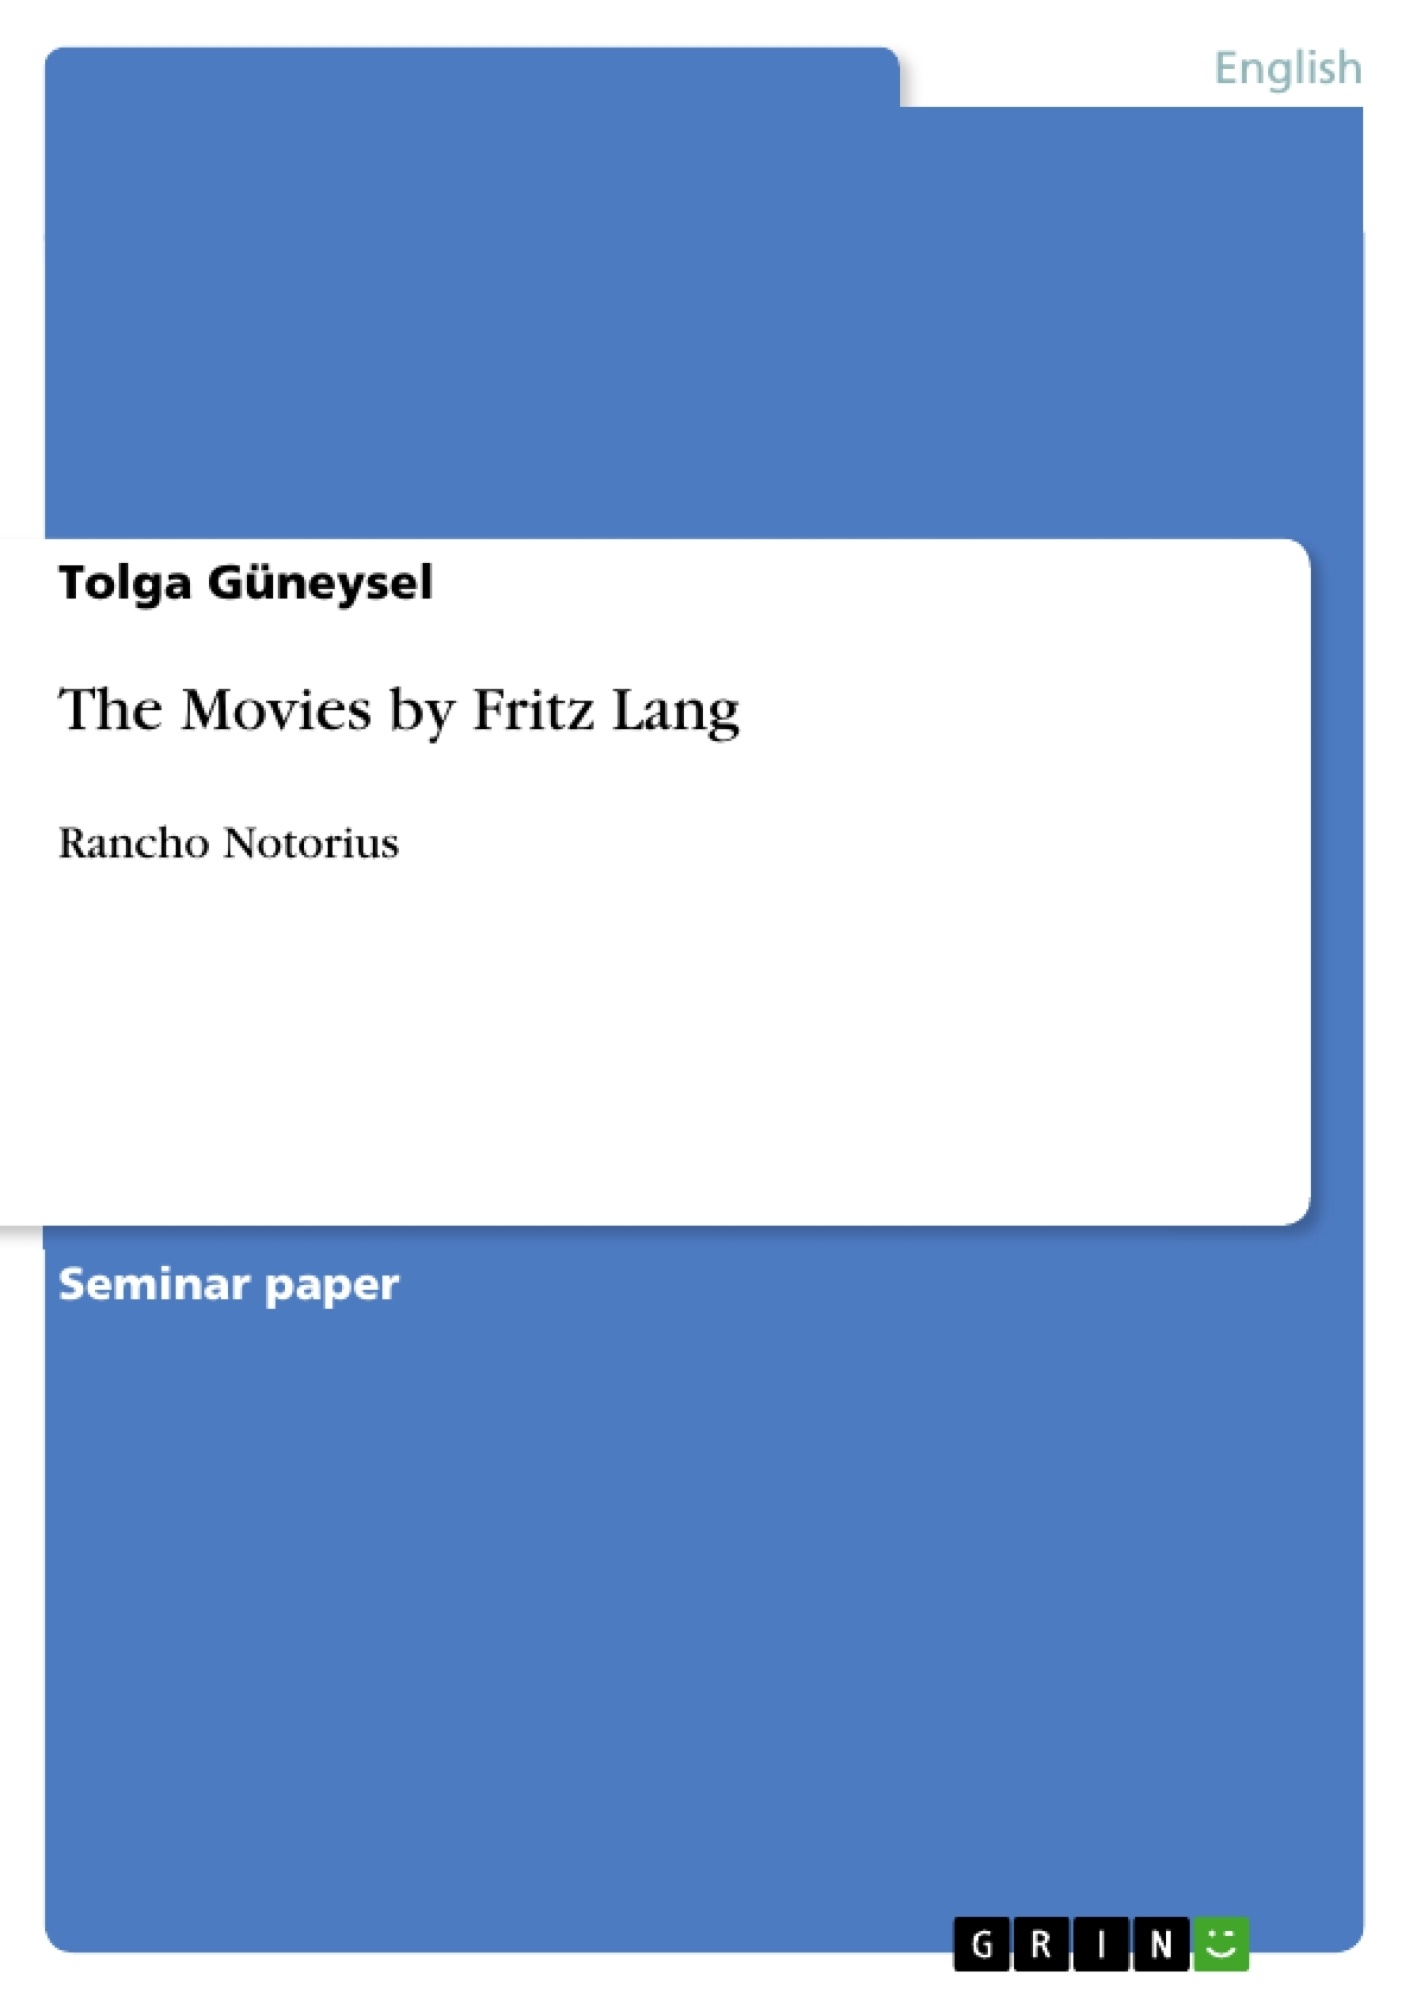 Title: The Movies by Fritz Lang